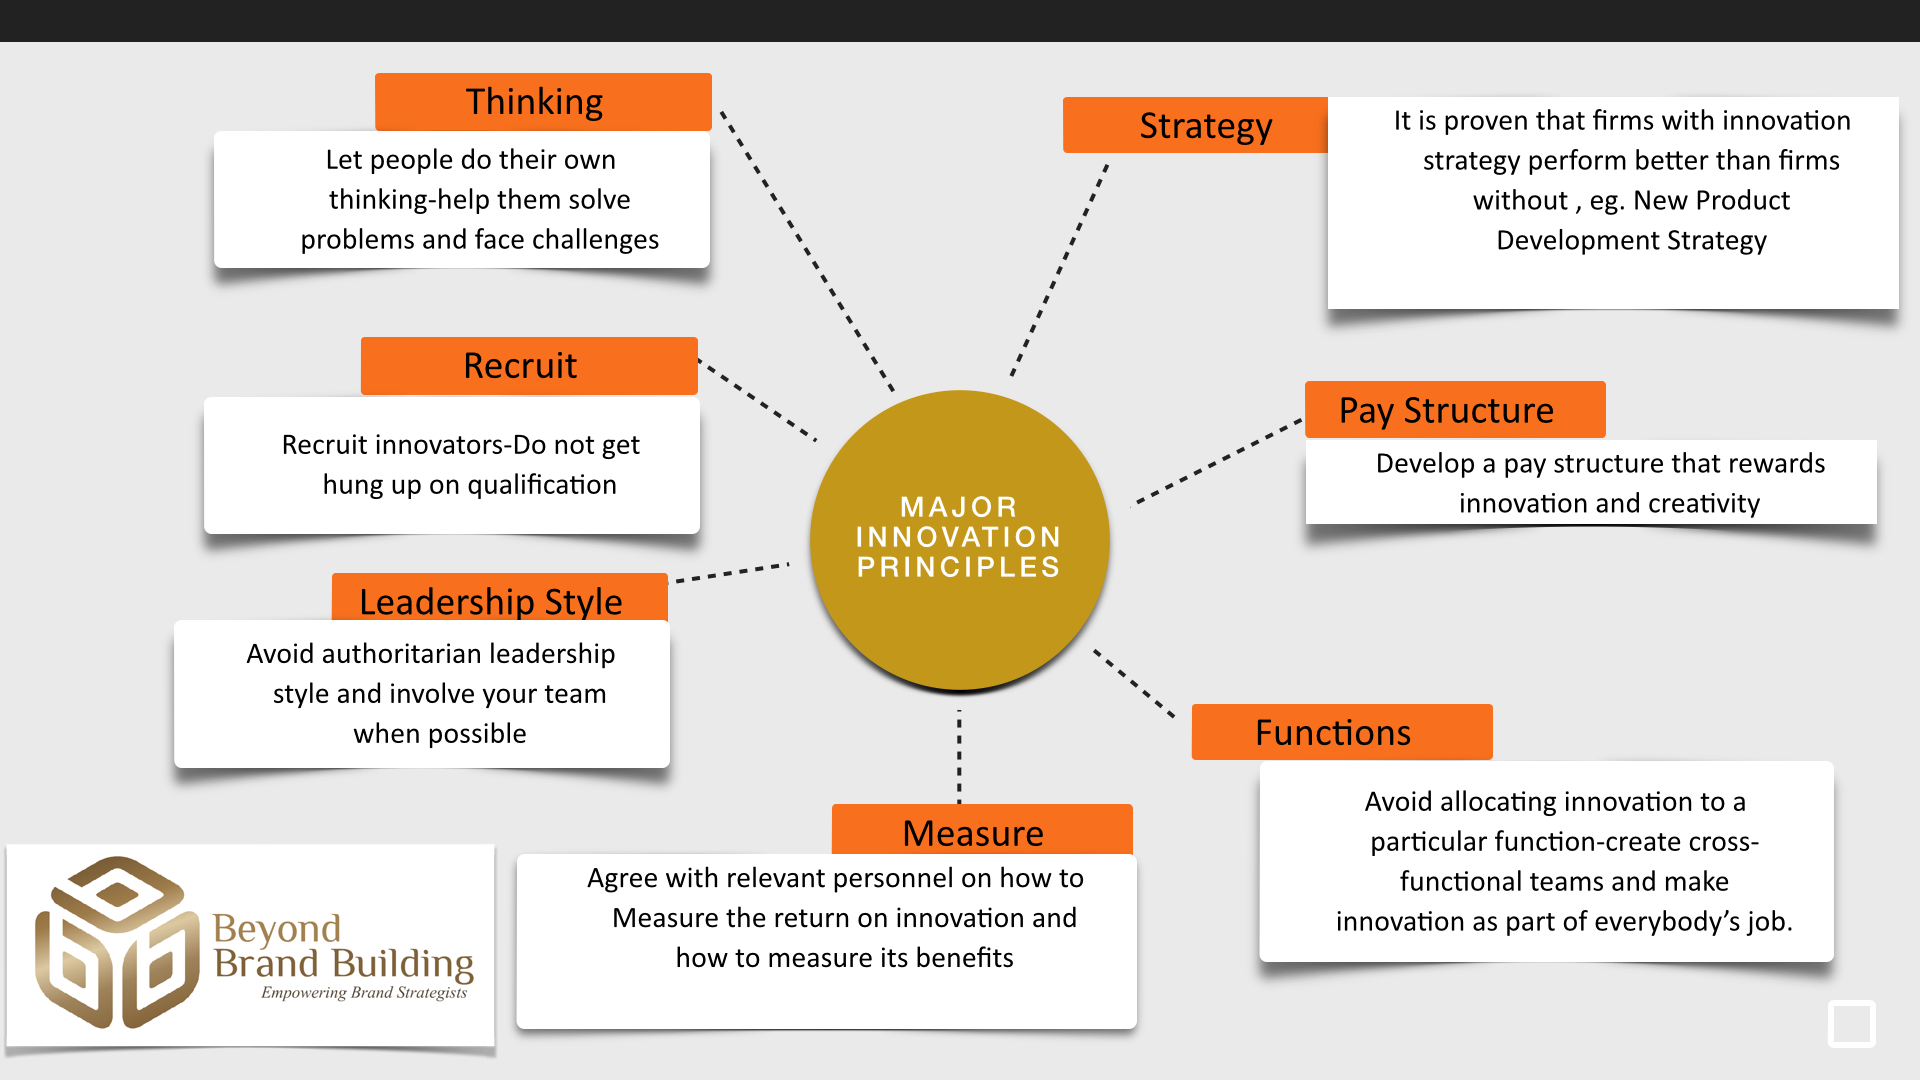 Major Innovation Principles For An Effective Brand Management Beyond Brand Building